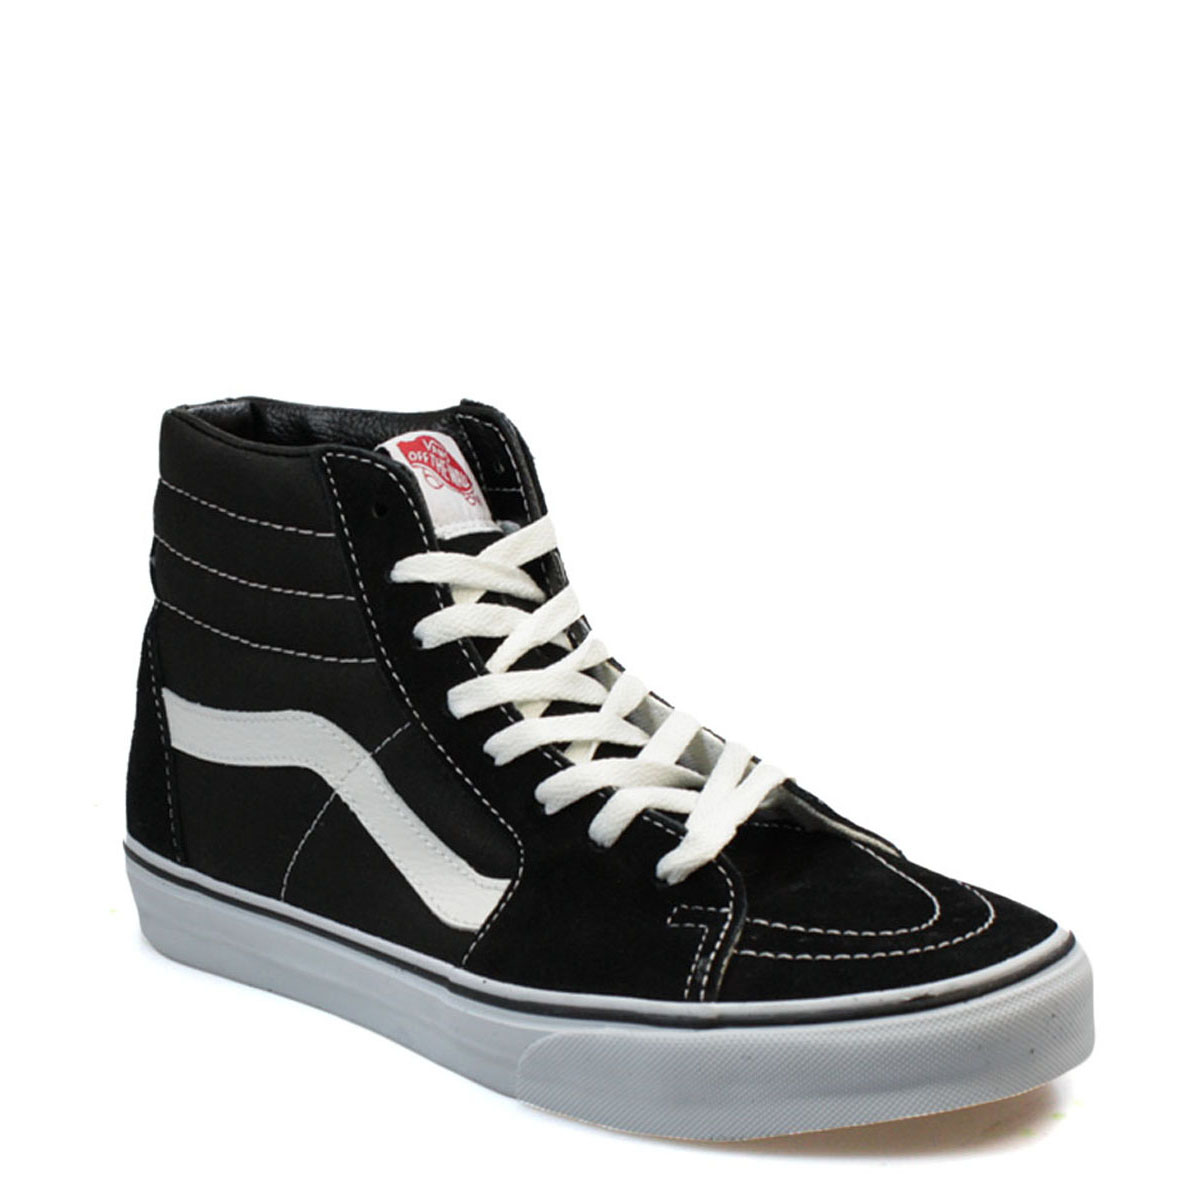 vans unisex sk8 black hi top trainers old skool suede lace up casual shoes ebay. Black Bedroom Furniture Sets. Home Design Ideas